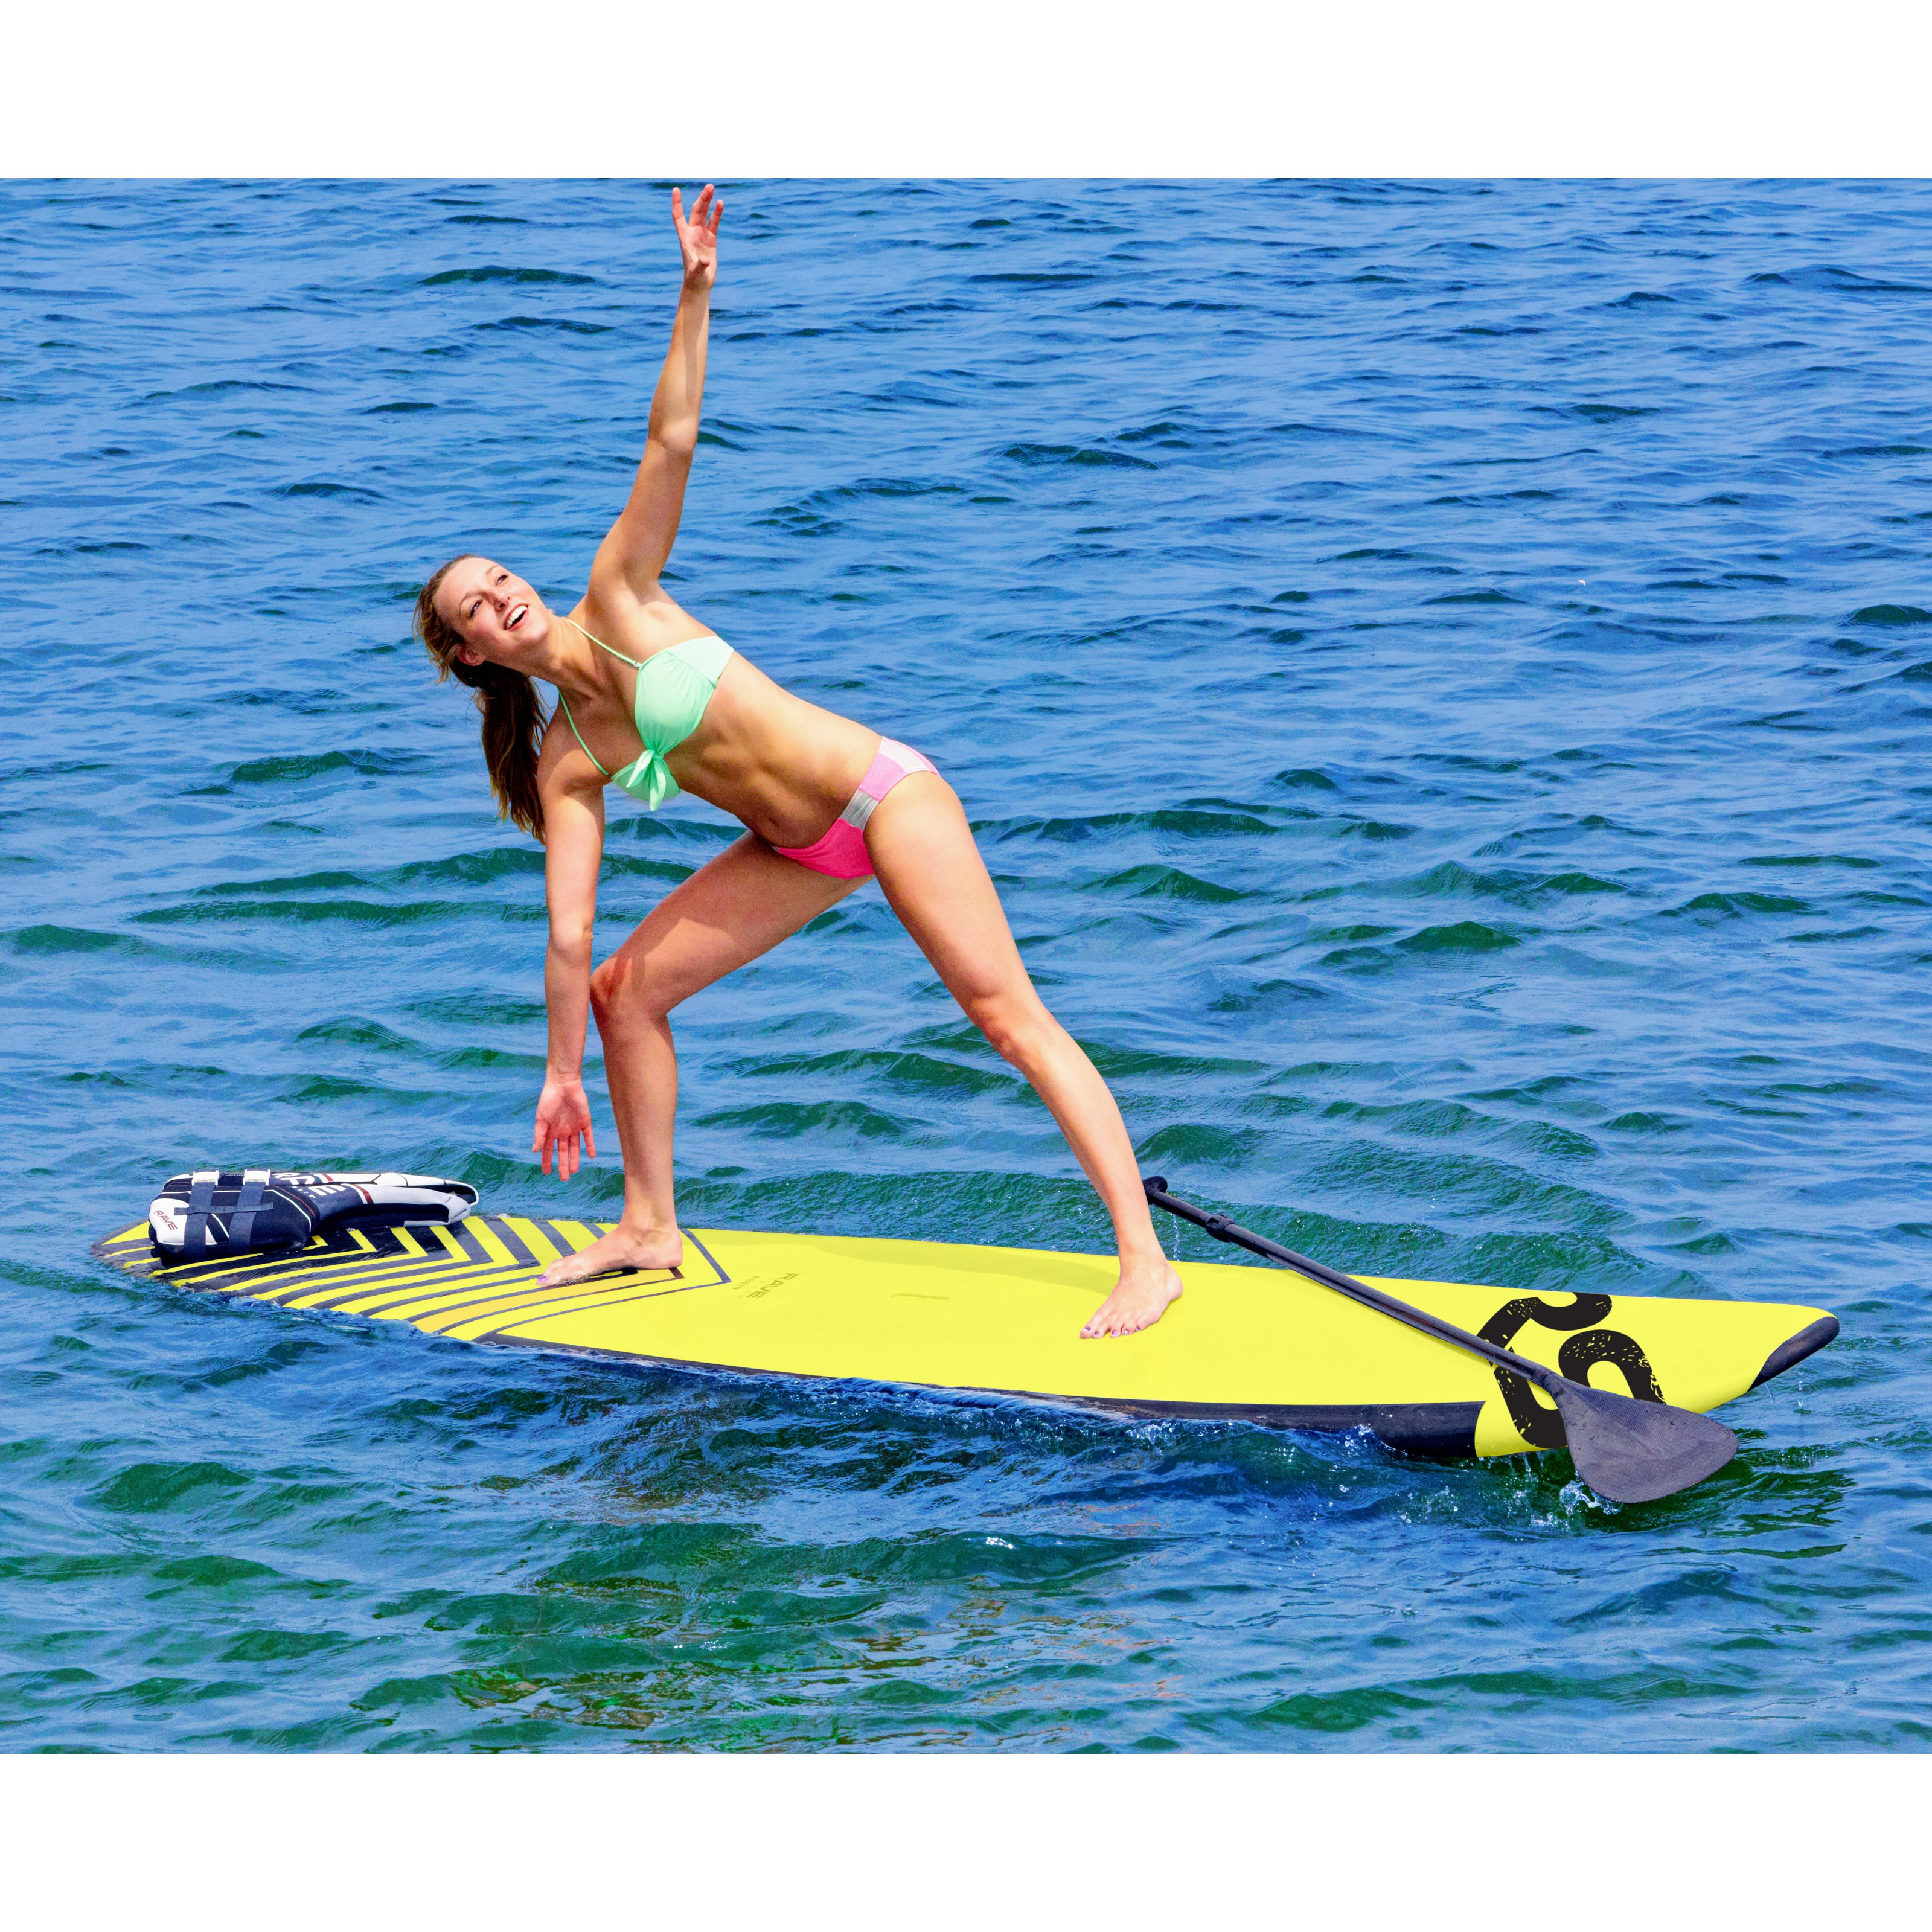 Rave Sports Soft Top SUP FS110 Stand Up Paddle Board